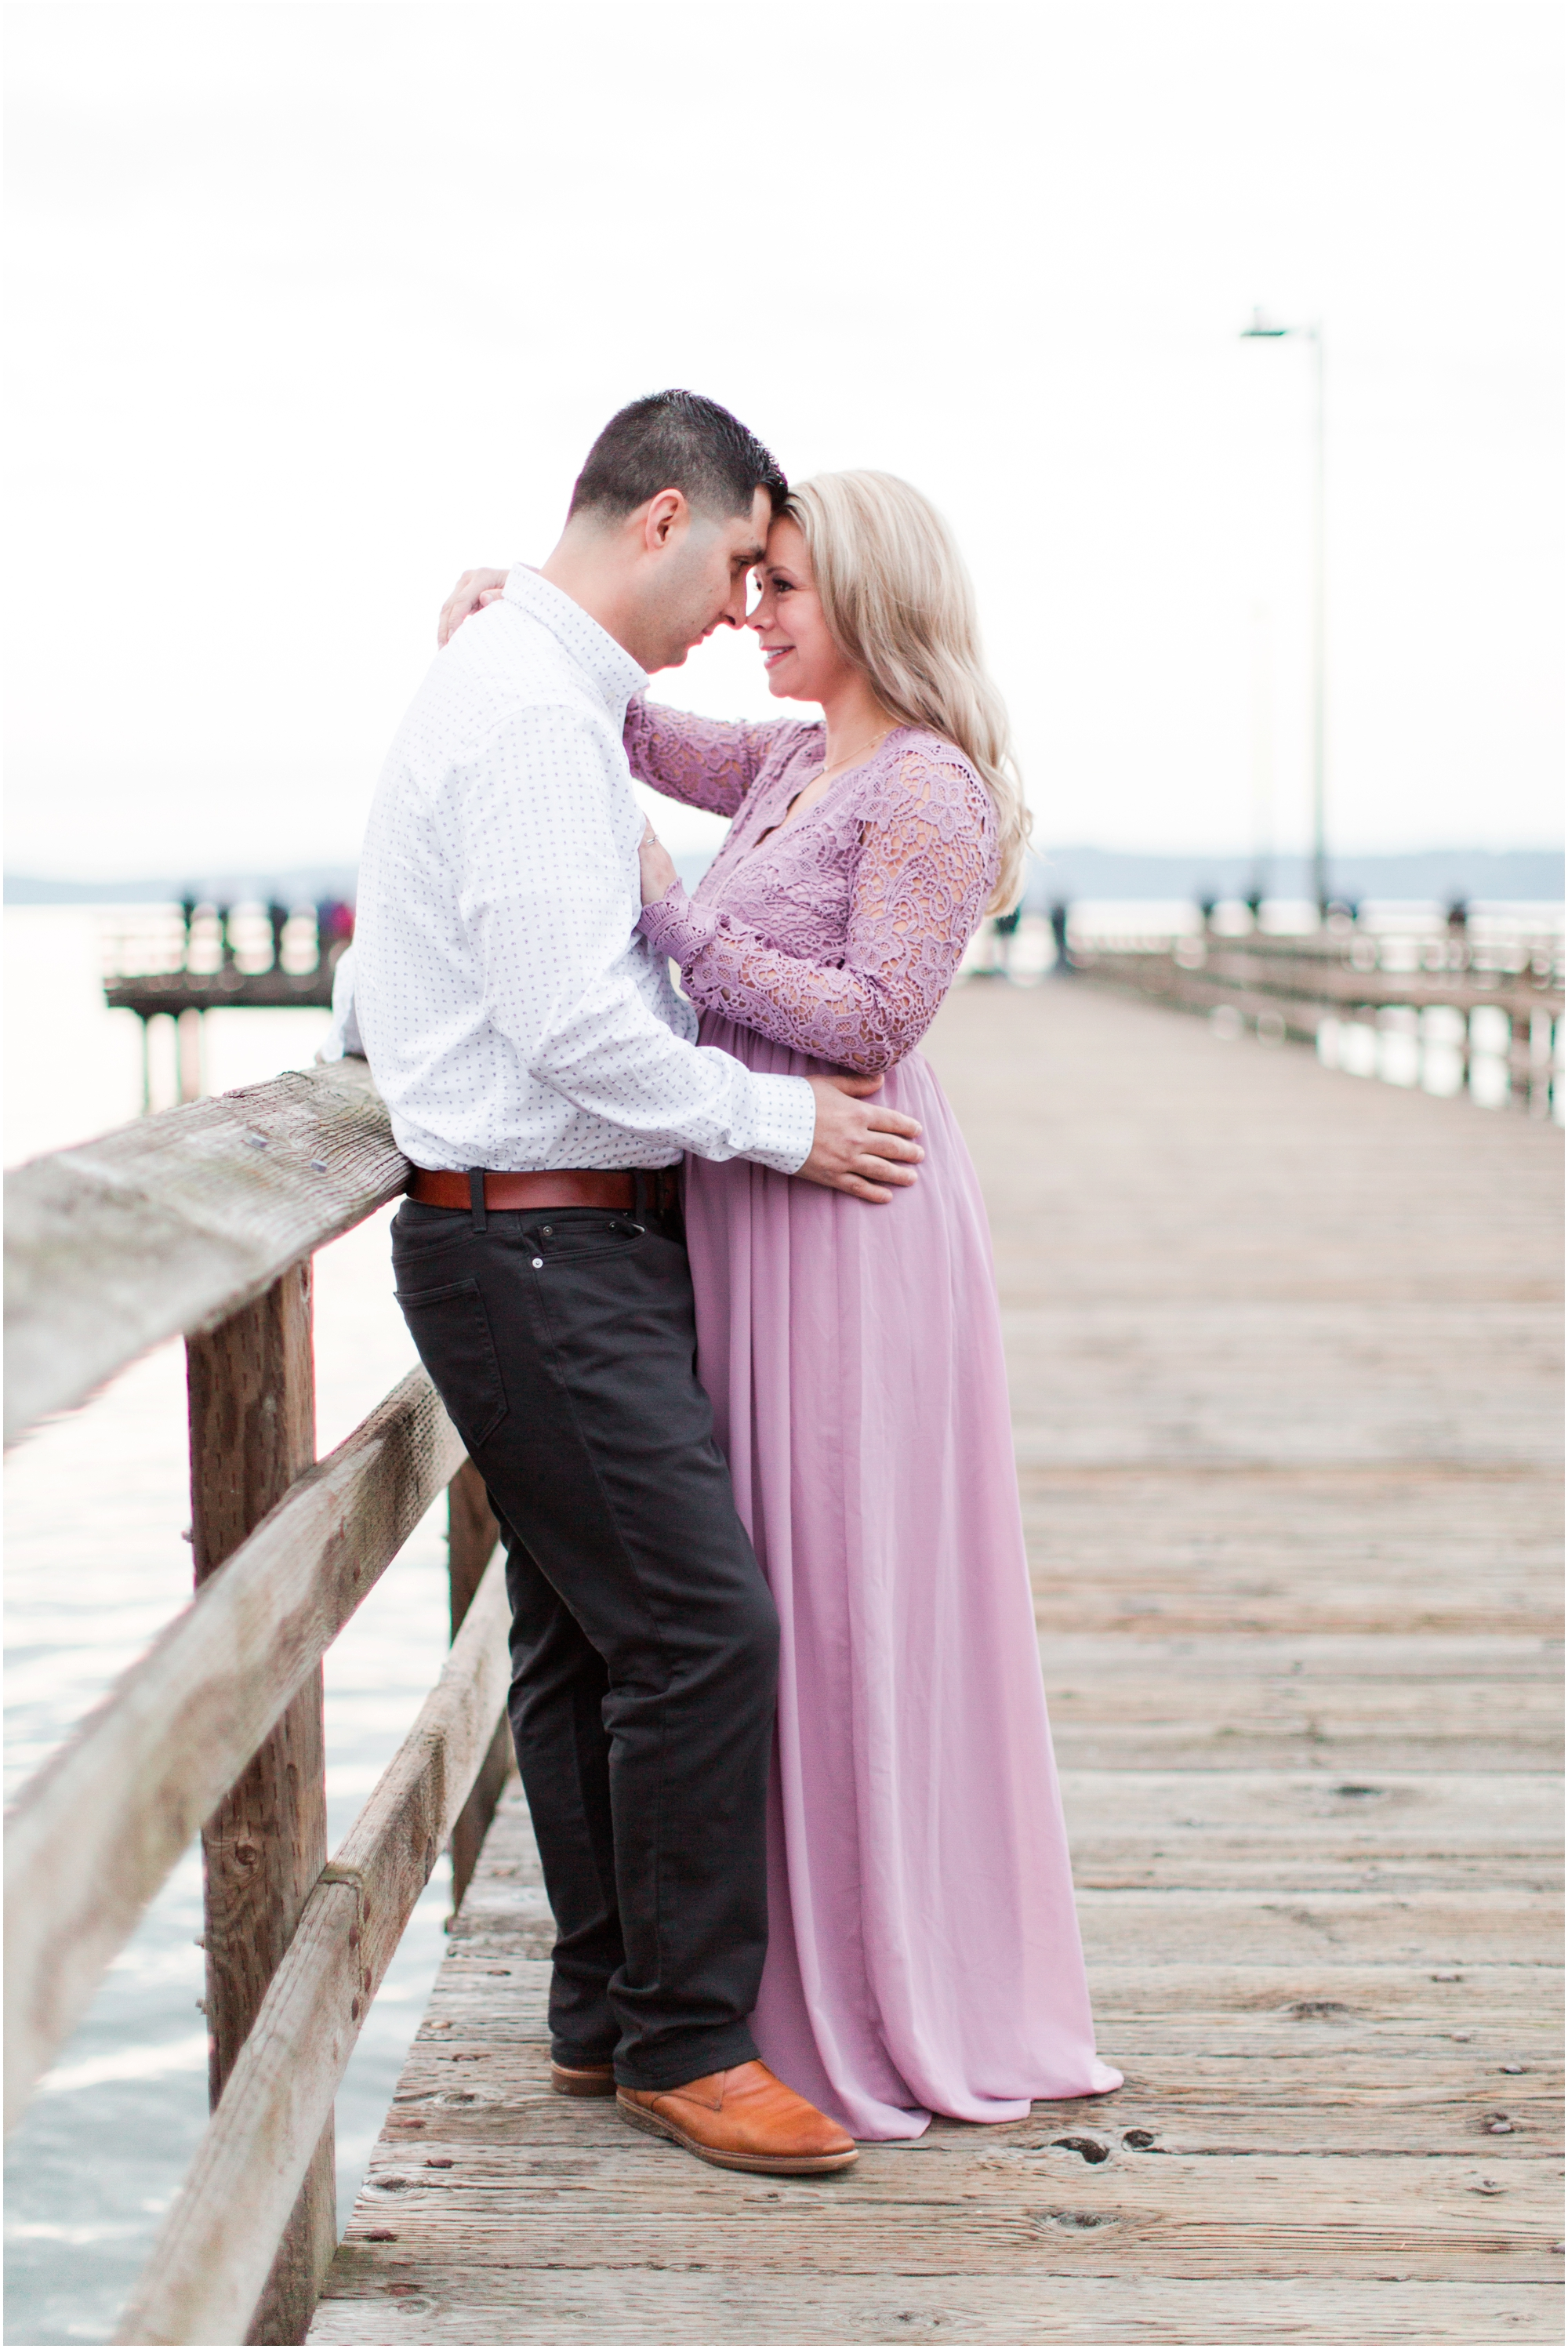 Maternity photos by Briana Calderon Photography based in the Greater Seattle & Tacoma, WA_1003.jpg